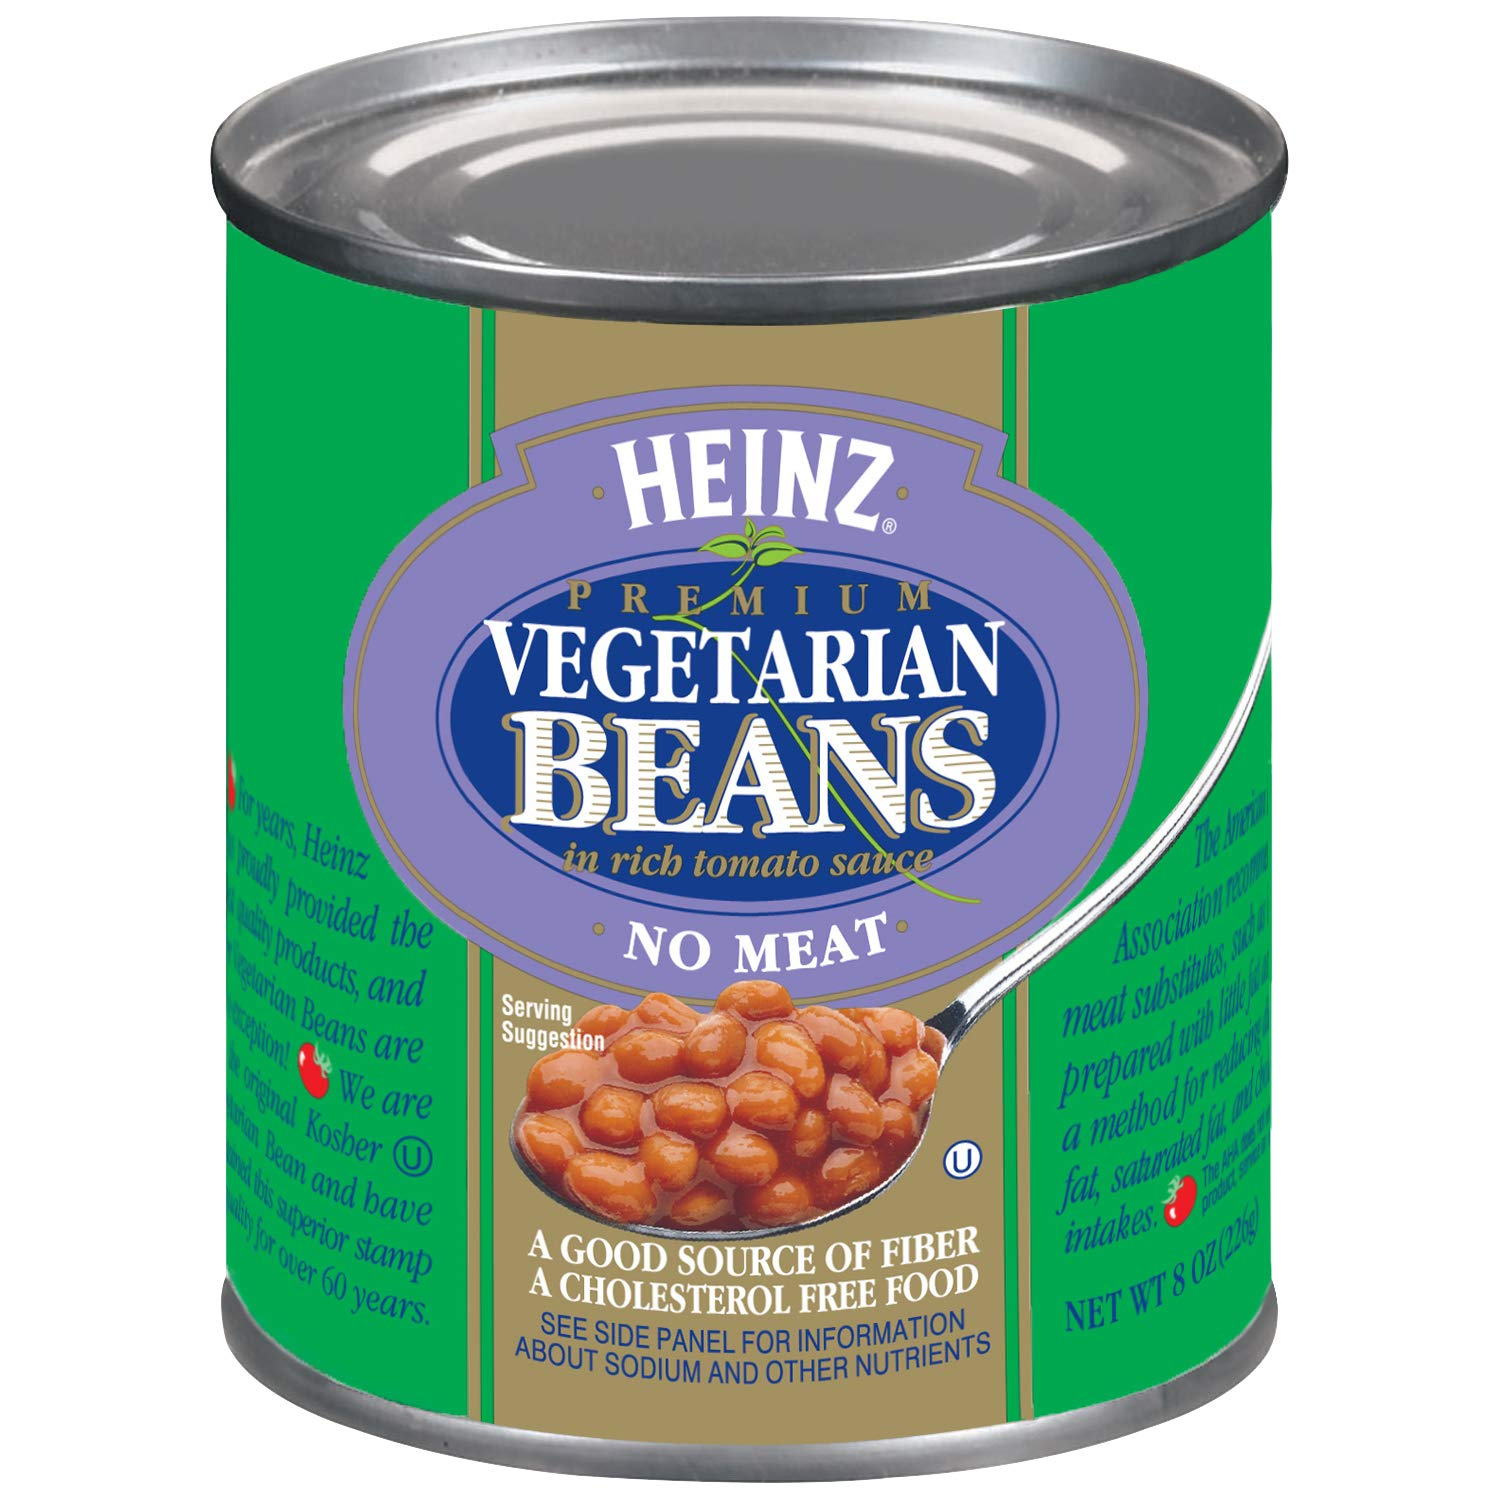 Heinz Vegetarian Beans (8 oz Cans, Pack of 24) by Heinz